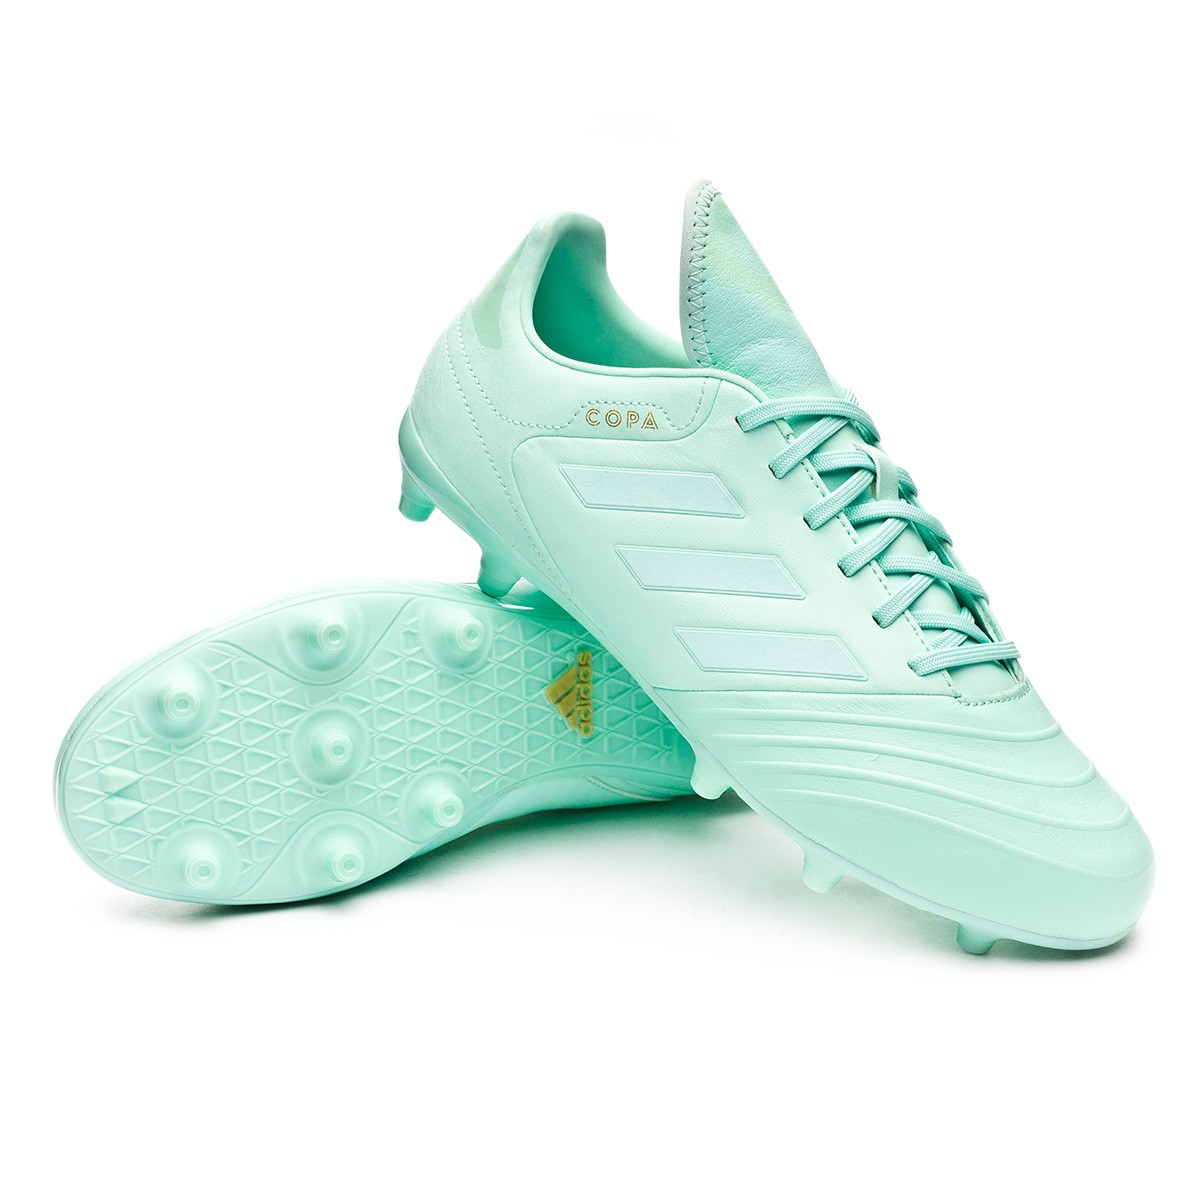 finest selection 517ff faa1e Boot adidas Copa 18.3 FG Clear mint-Clear mint-Gold metallic - Football  store Fútbol Emotion